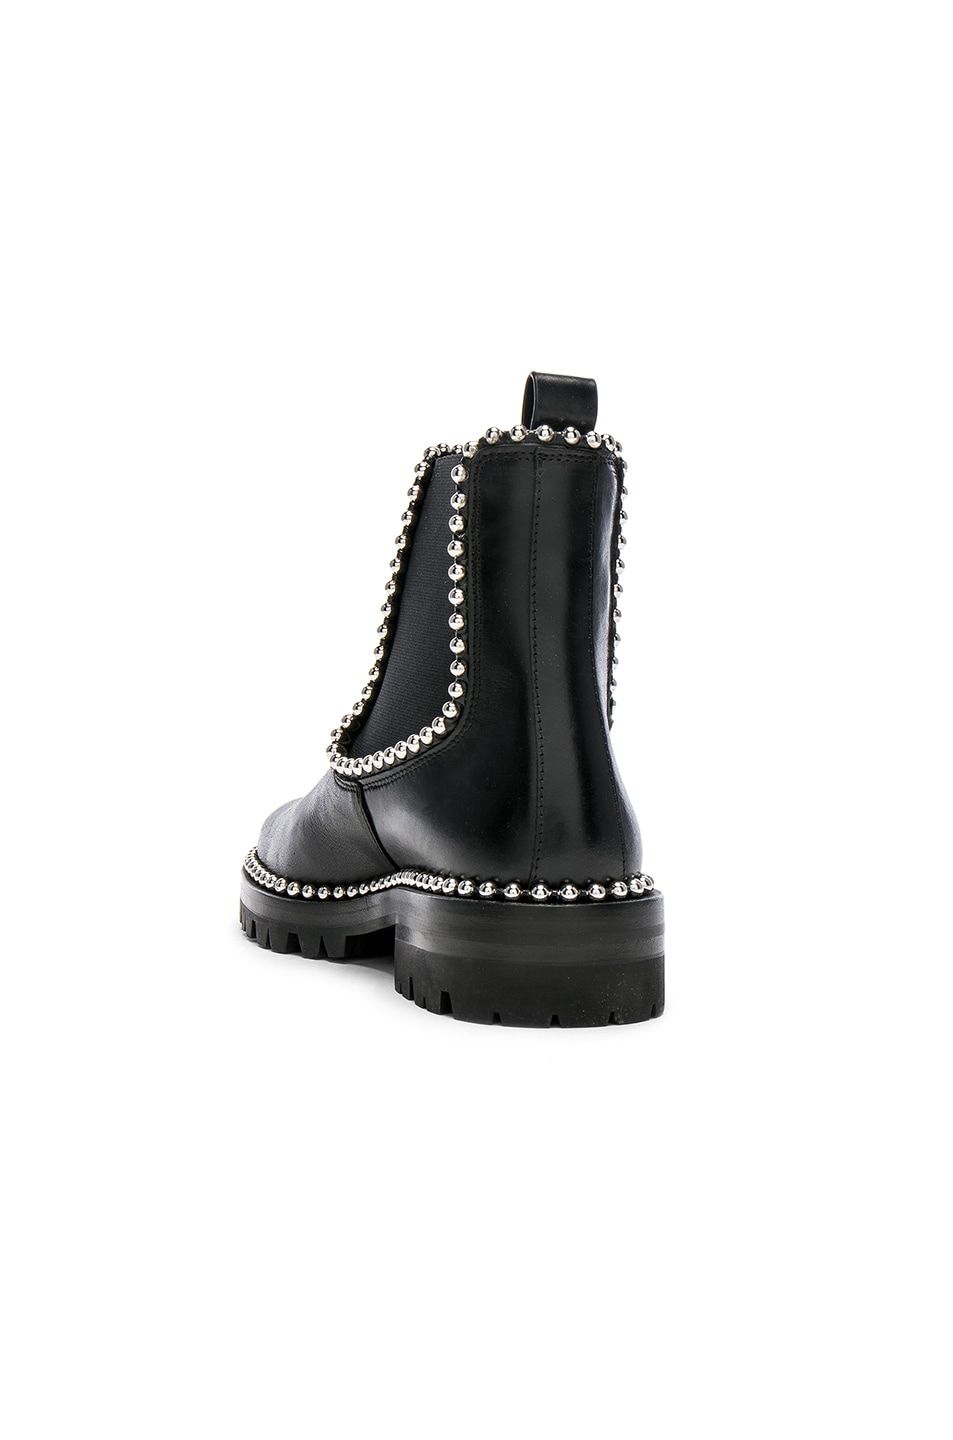 Image 3 of Alexander Wang Spencer Leather Boots in Black